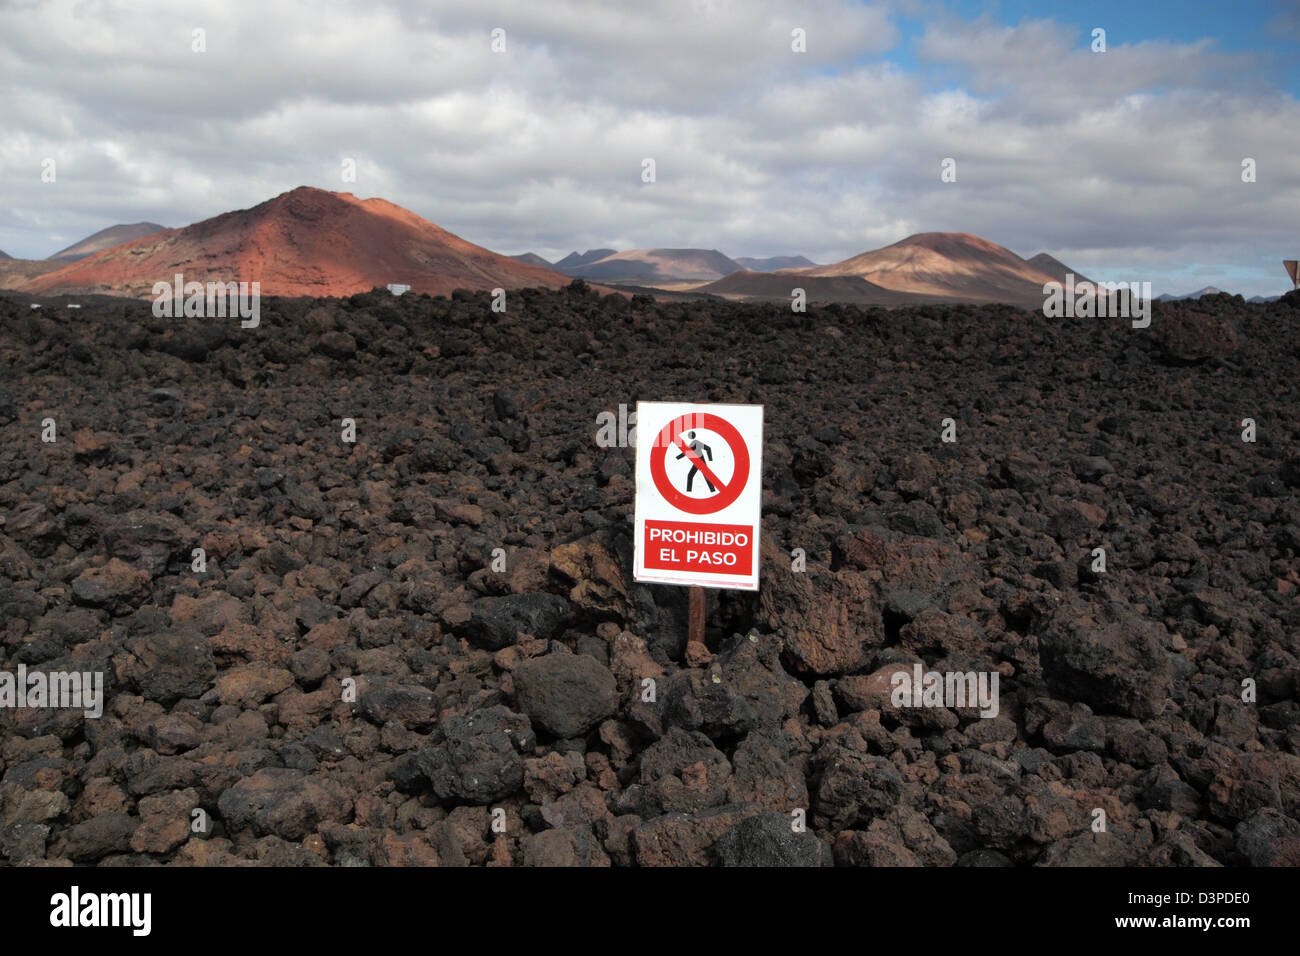 restricted access sign on lava fields in timanfaya national park, lanzarote spain canary islands - Stock Image